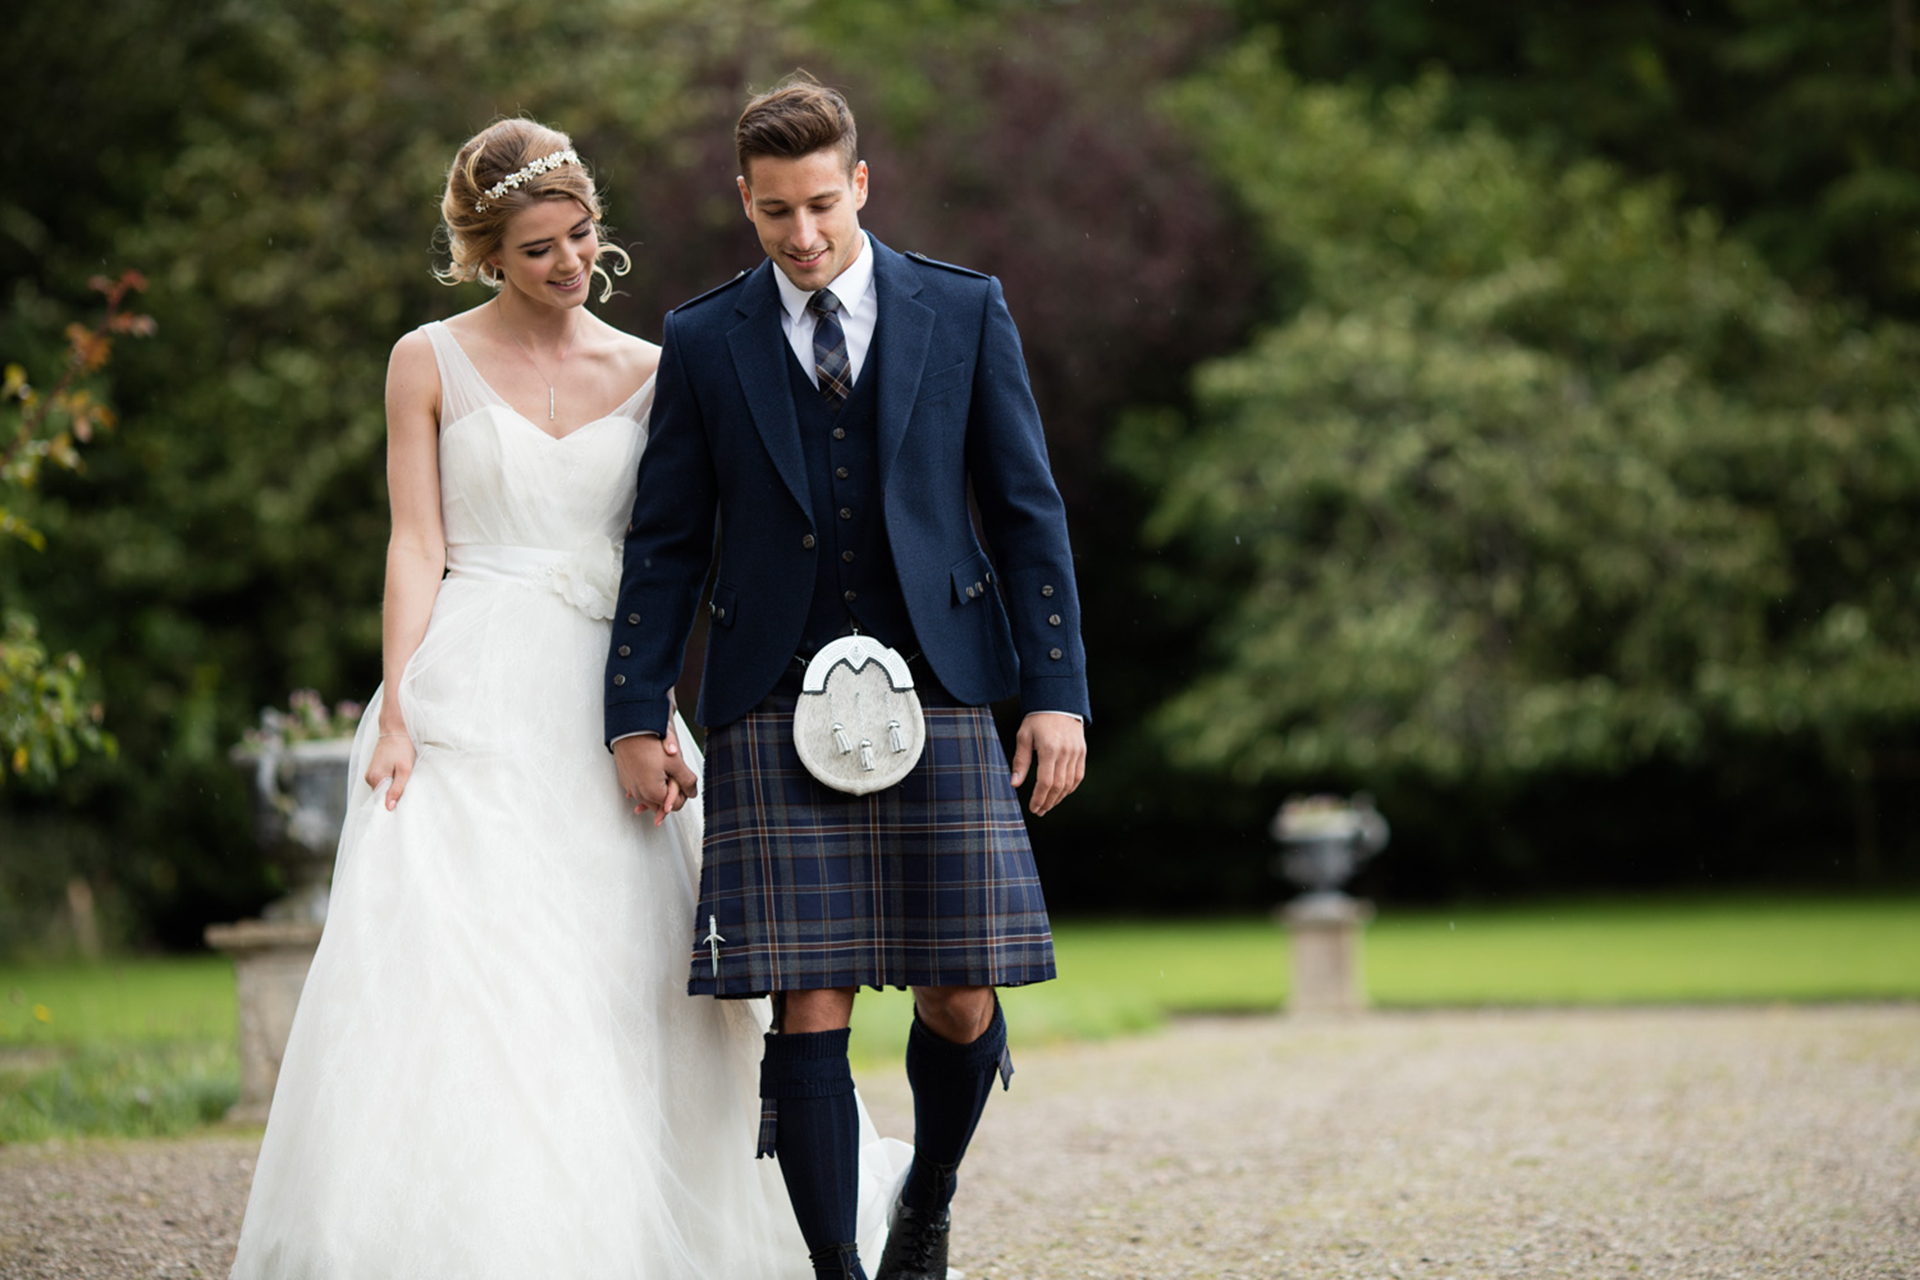 MacGregor and MacDuff Wedding Outfit